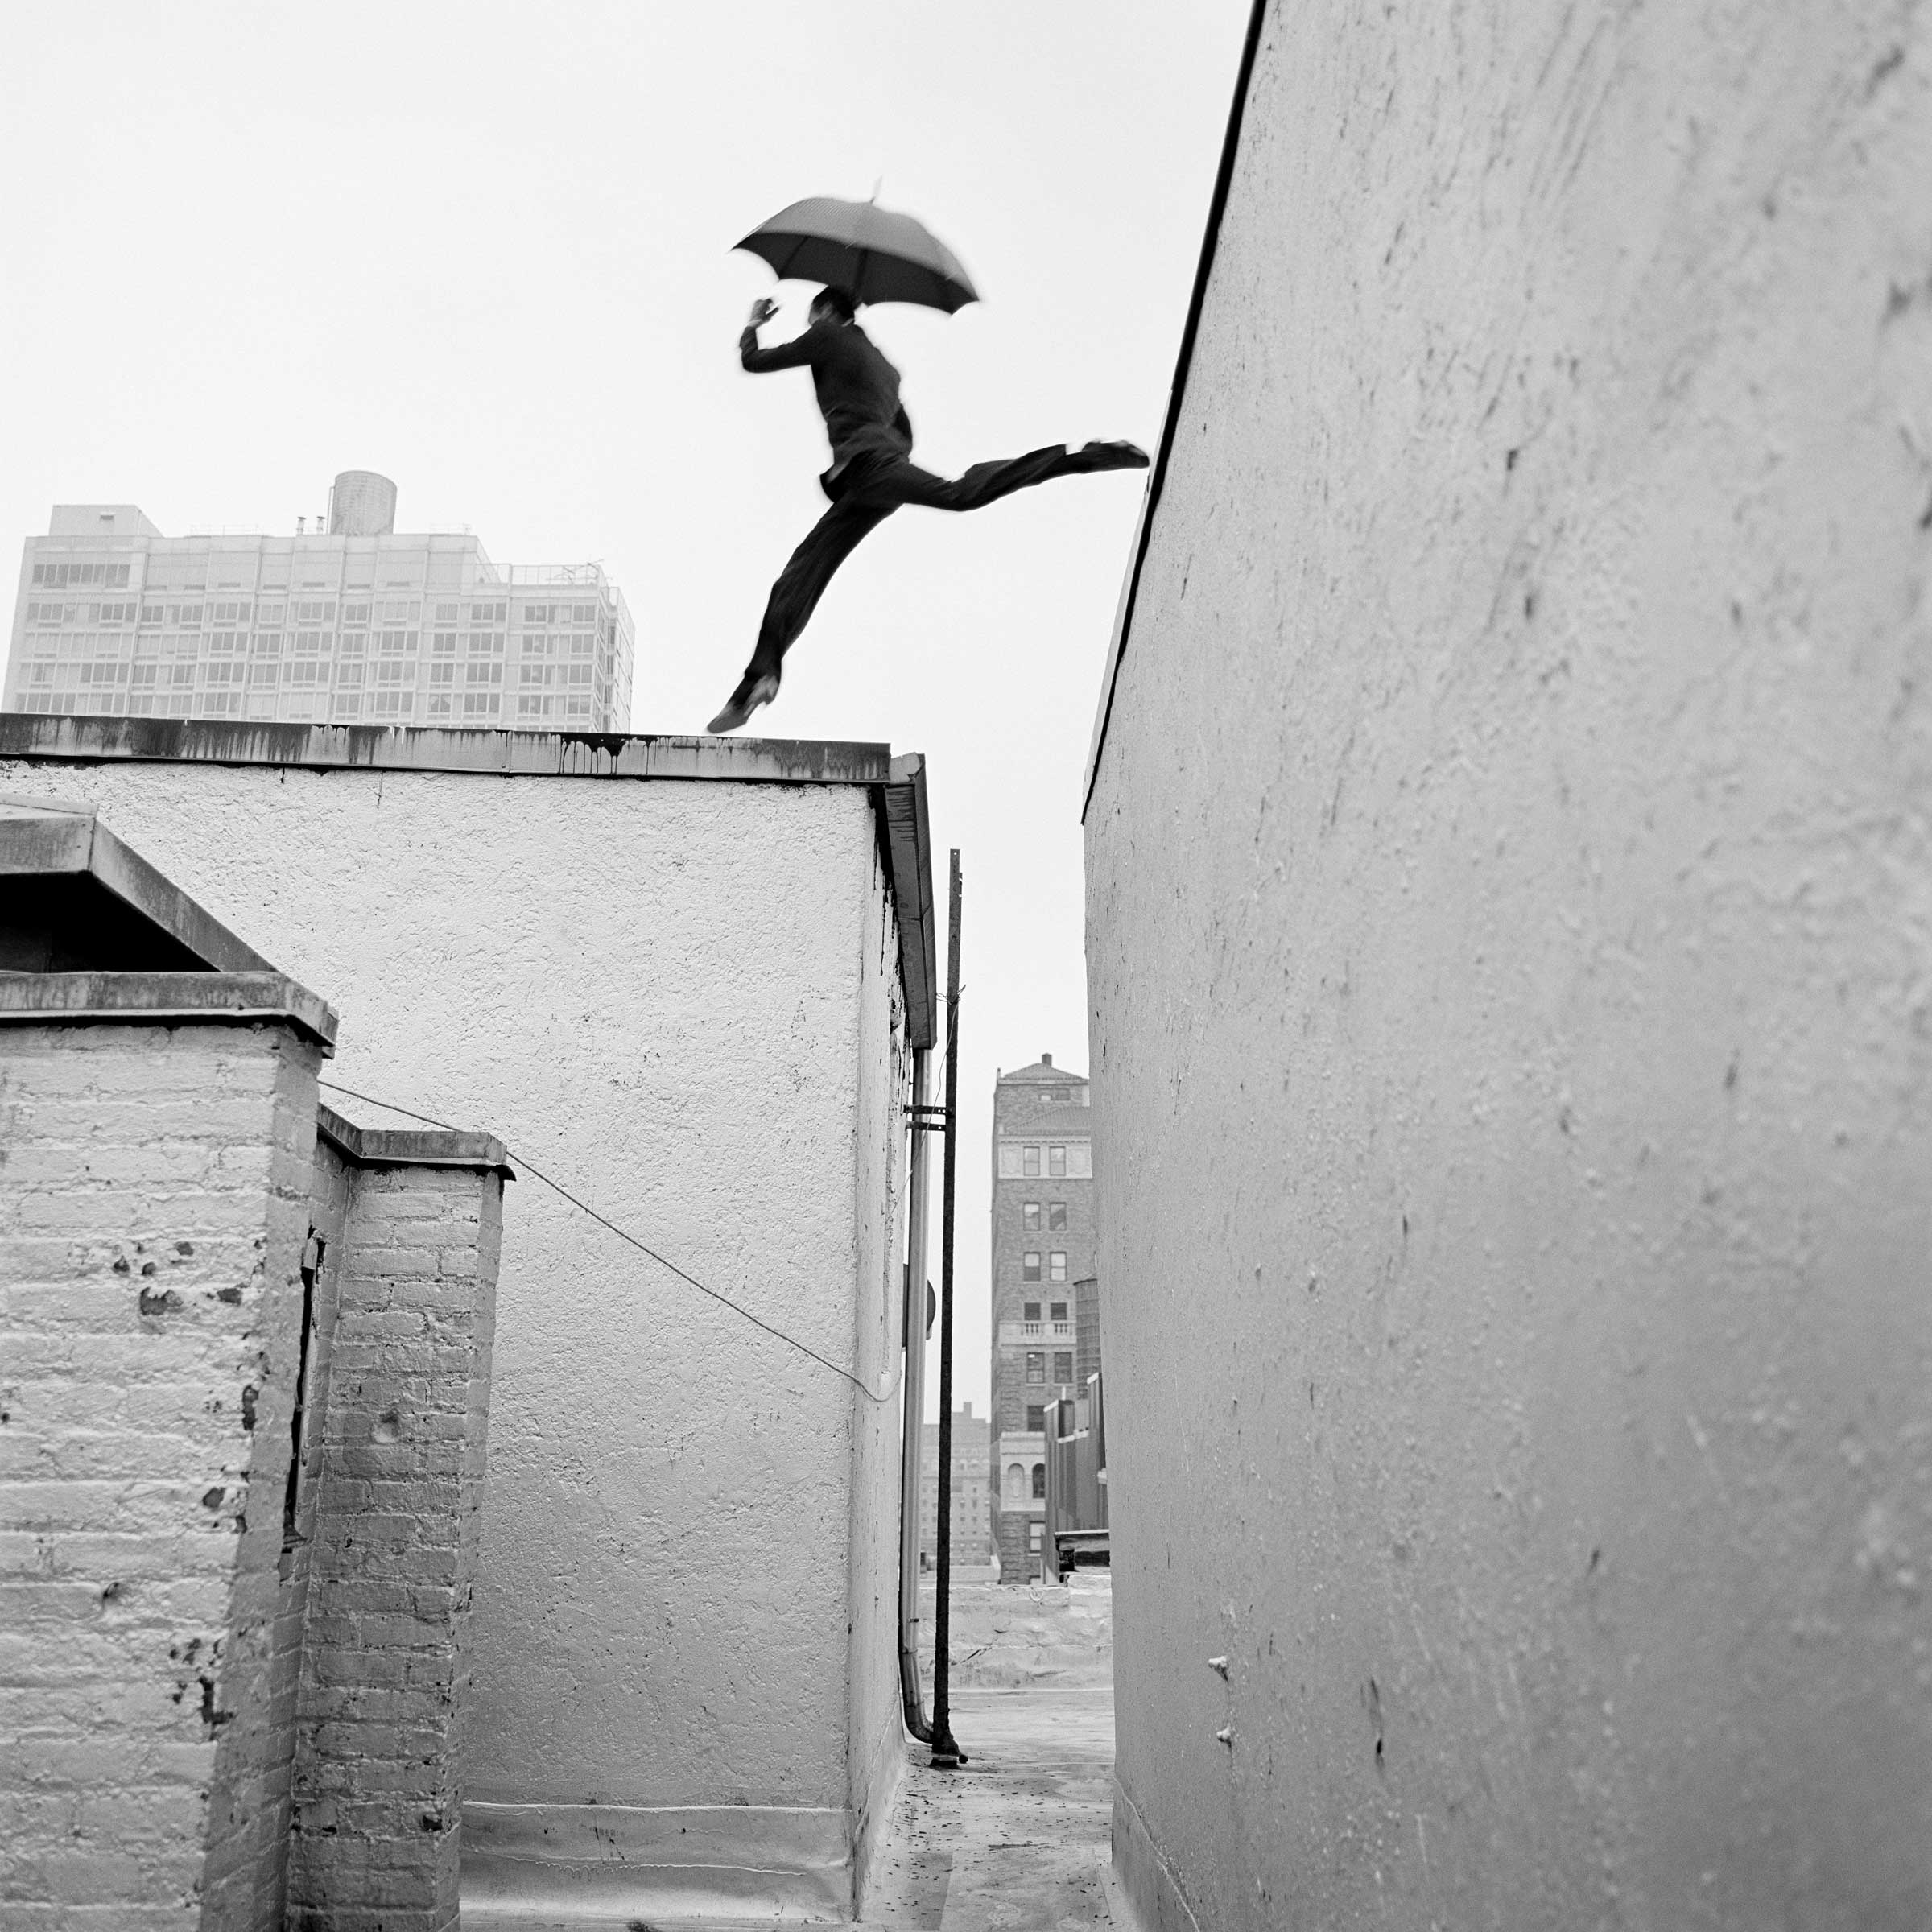 Rodney Smith  Reed Leaping over Rooftop, New York, New York  2007 Silver gelatin print 39.5 x 39.5 cm (image) Edition 1/25